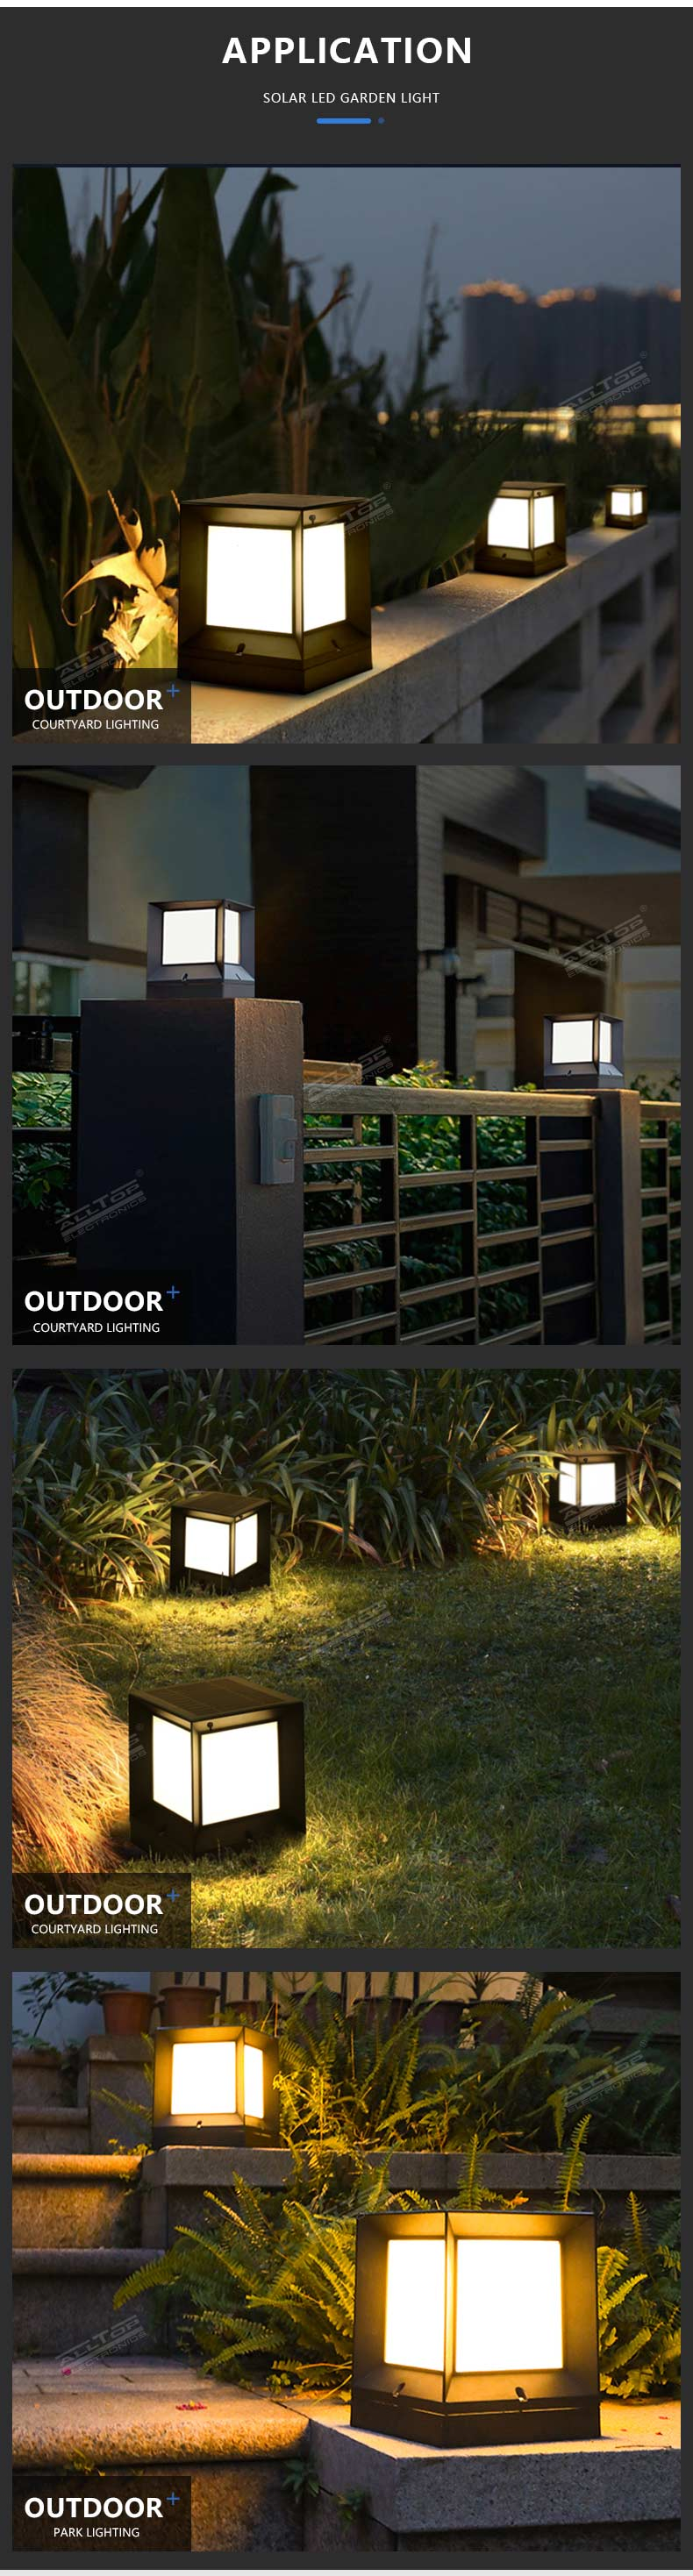 solar led garden lights-15